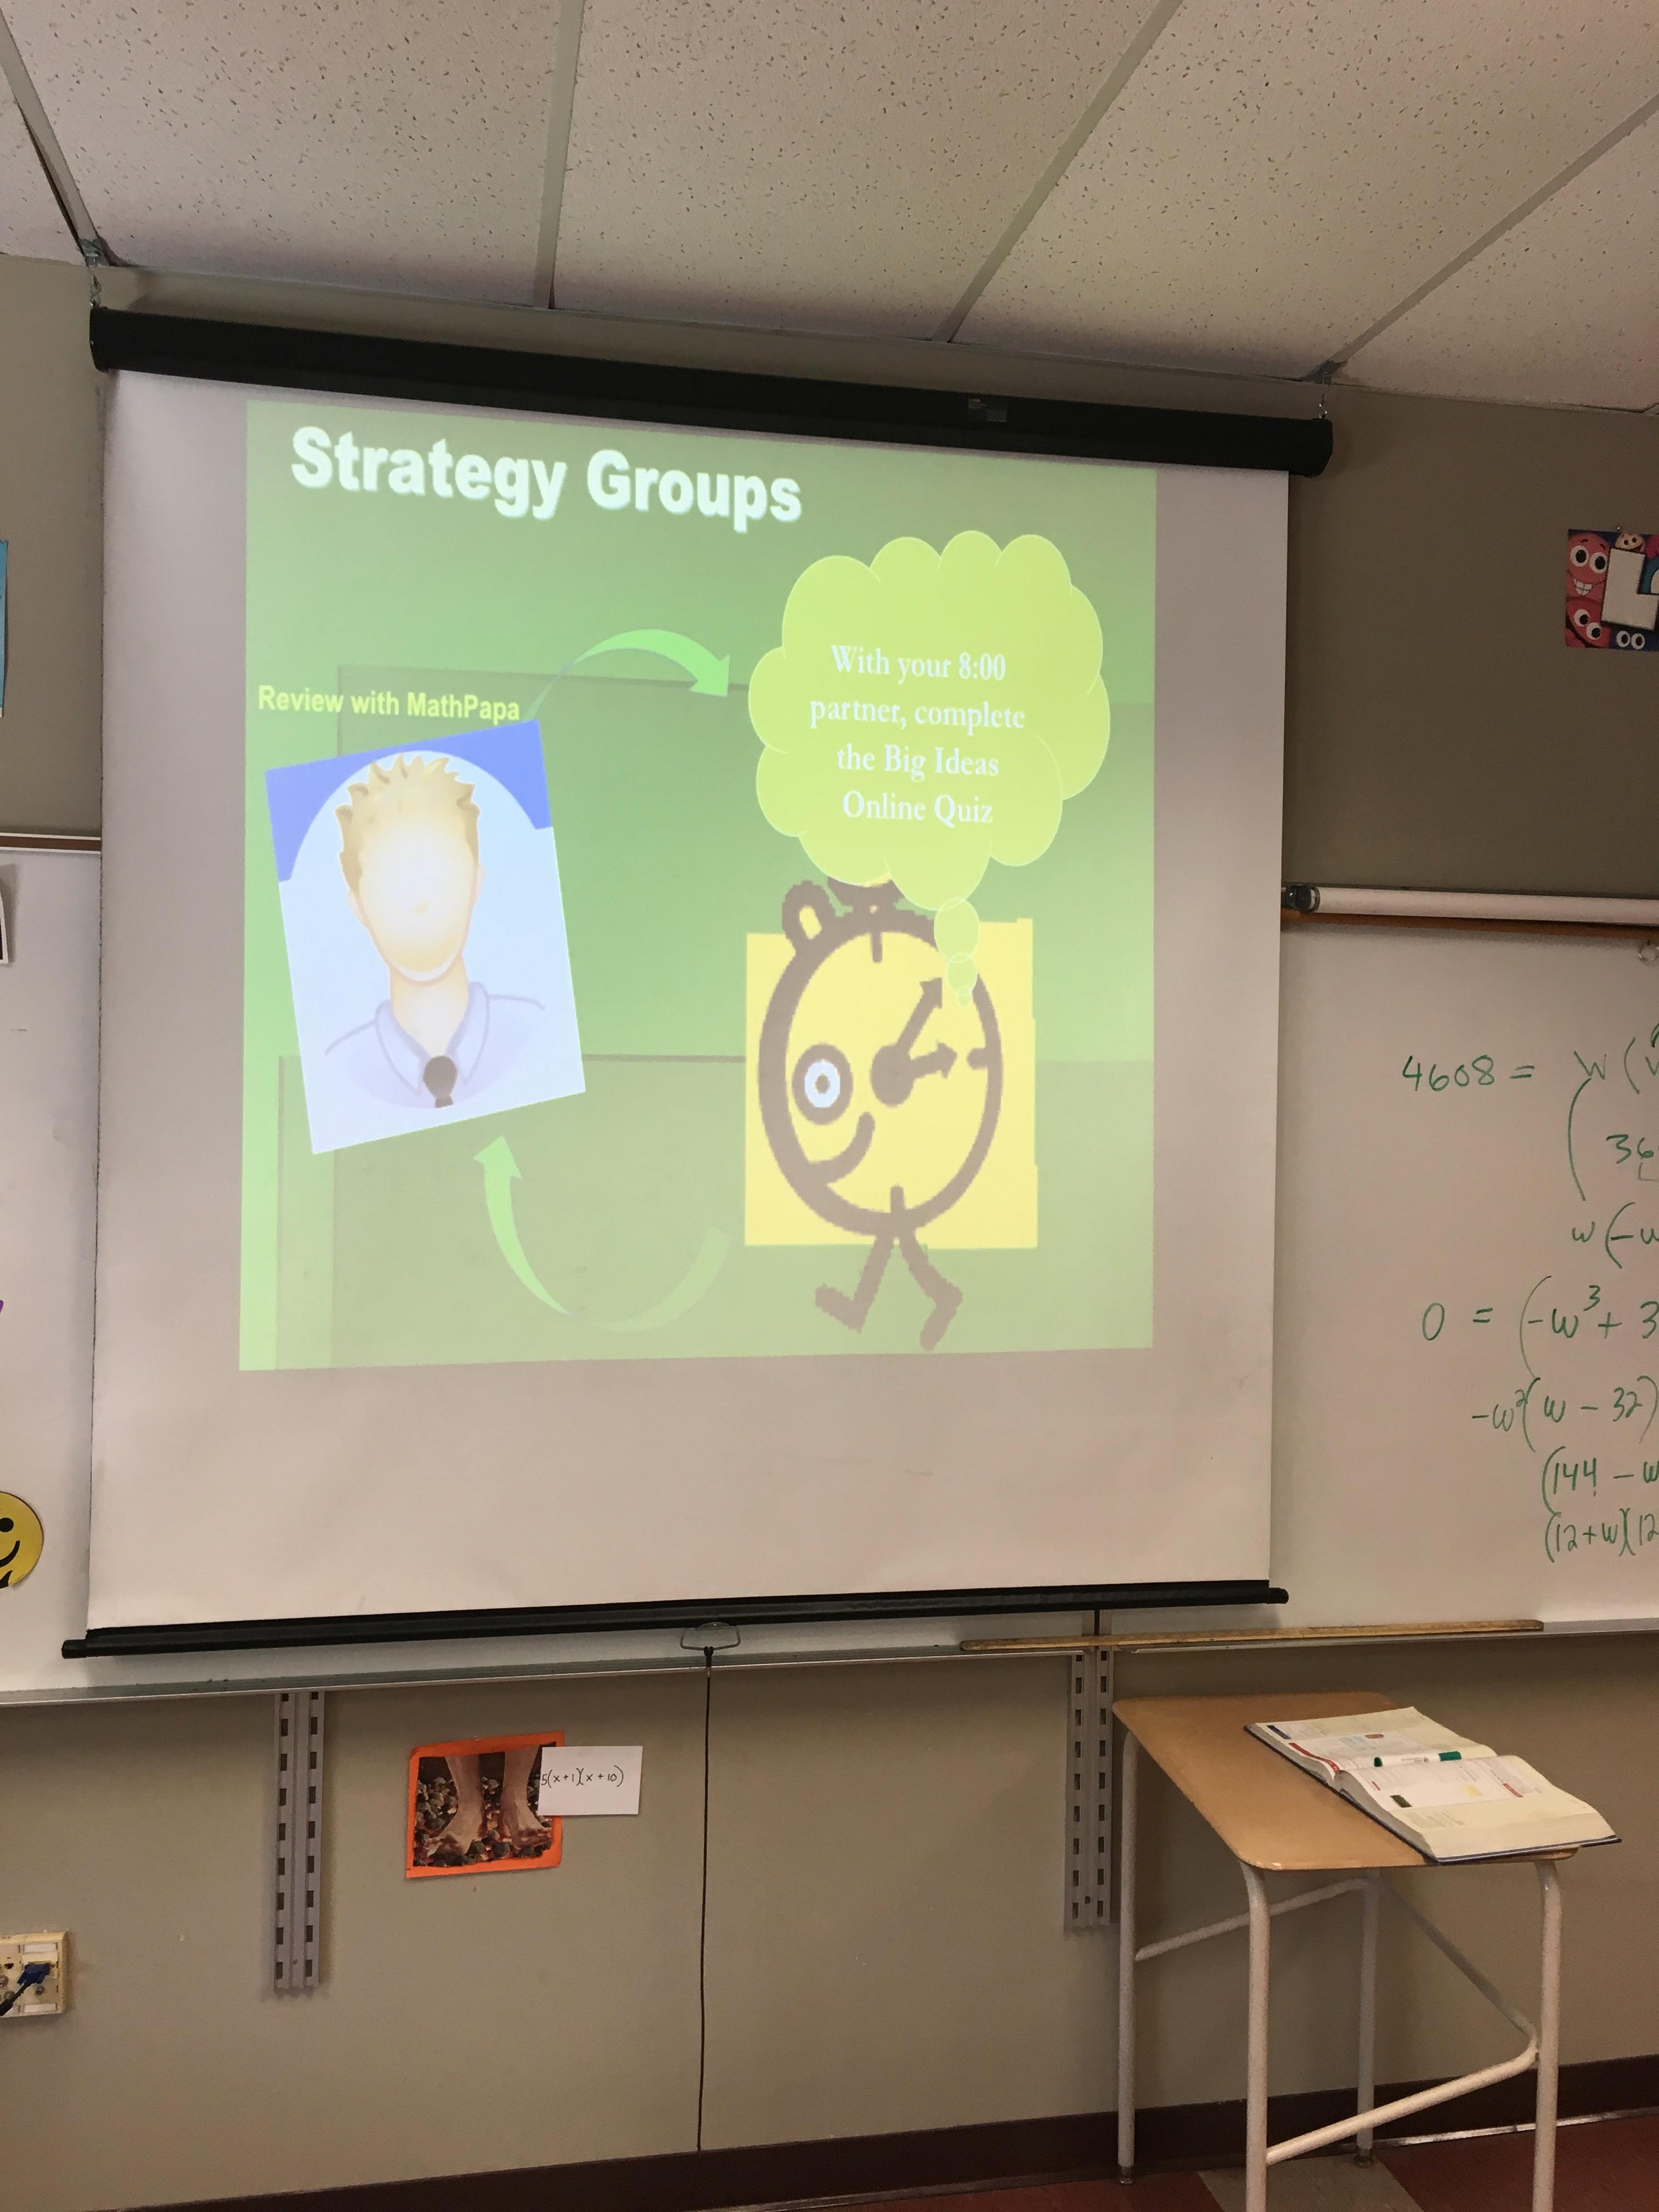 Strategy groups